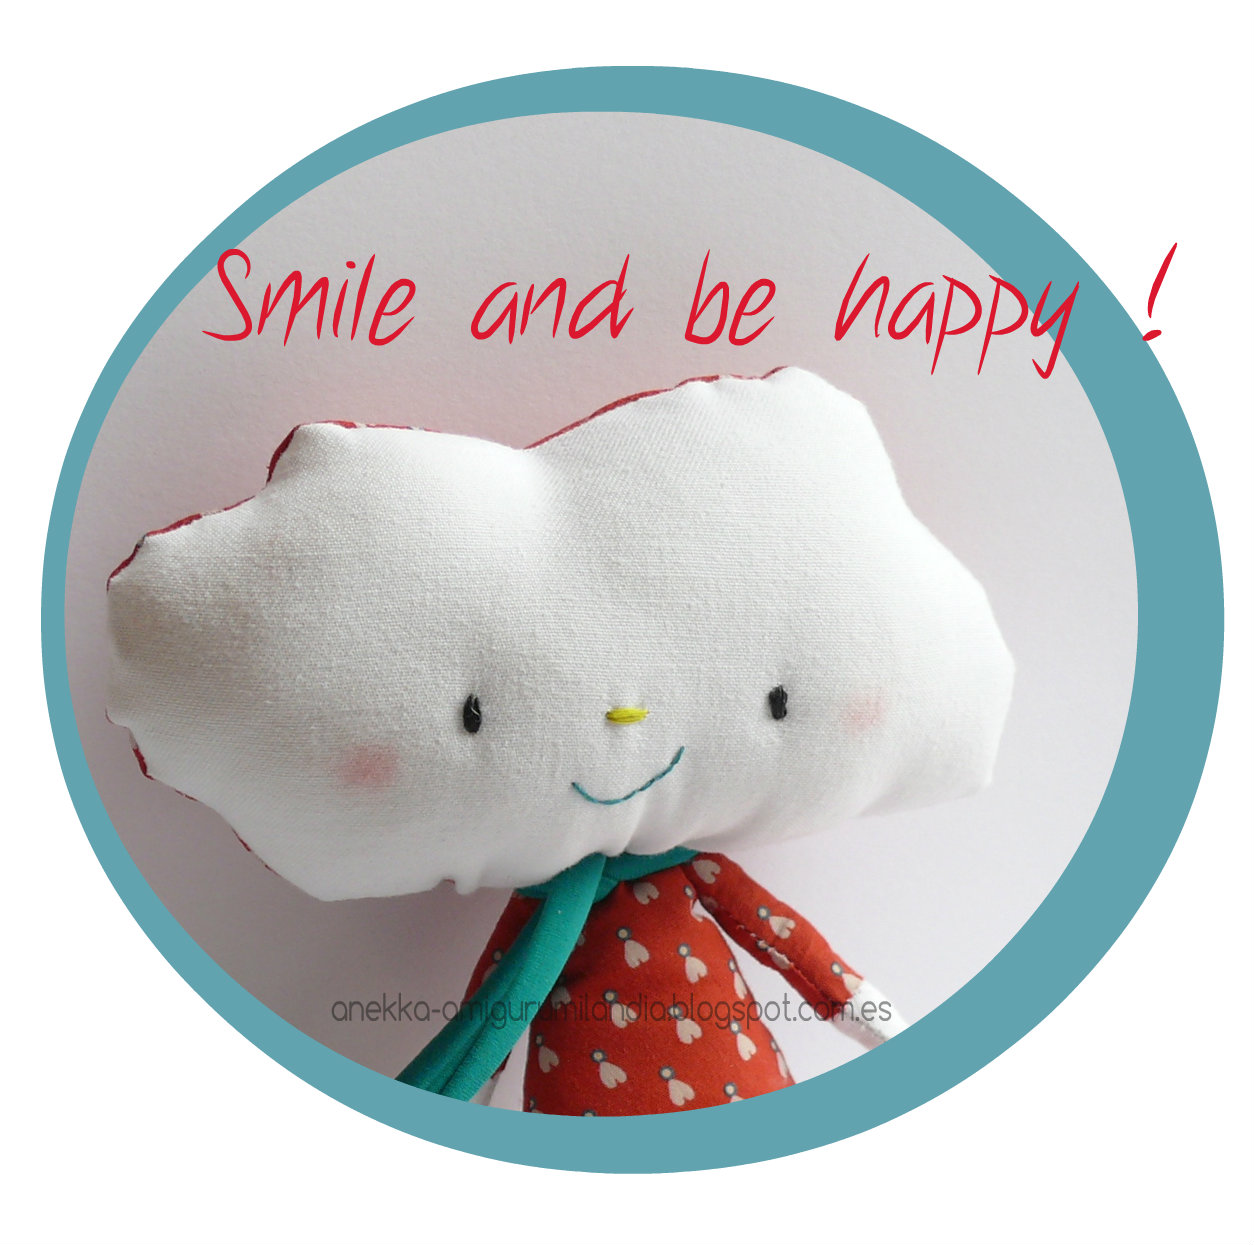 smile and be happy anekka handmade amigurumilandia